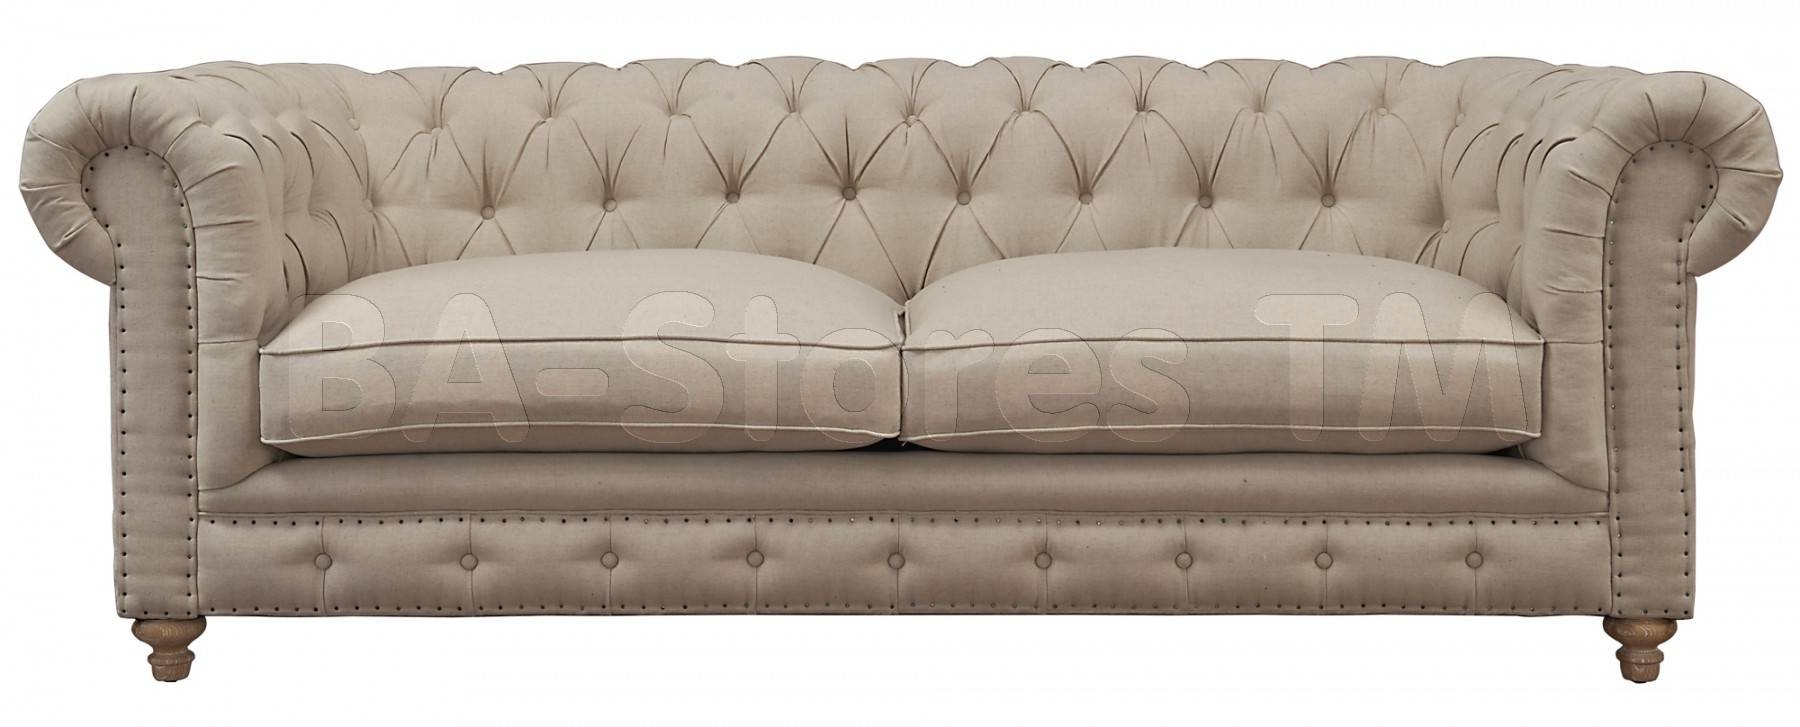 Sofas: Oxford Beige Linen Sofa Tov S19/4   Ba Stores For Oxford Sofas (Photo 6 of 30)